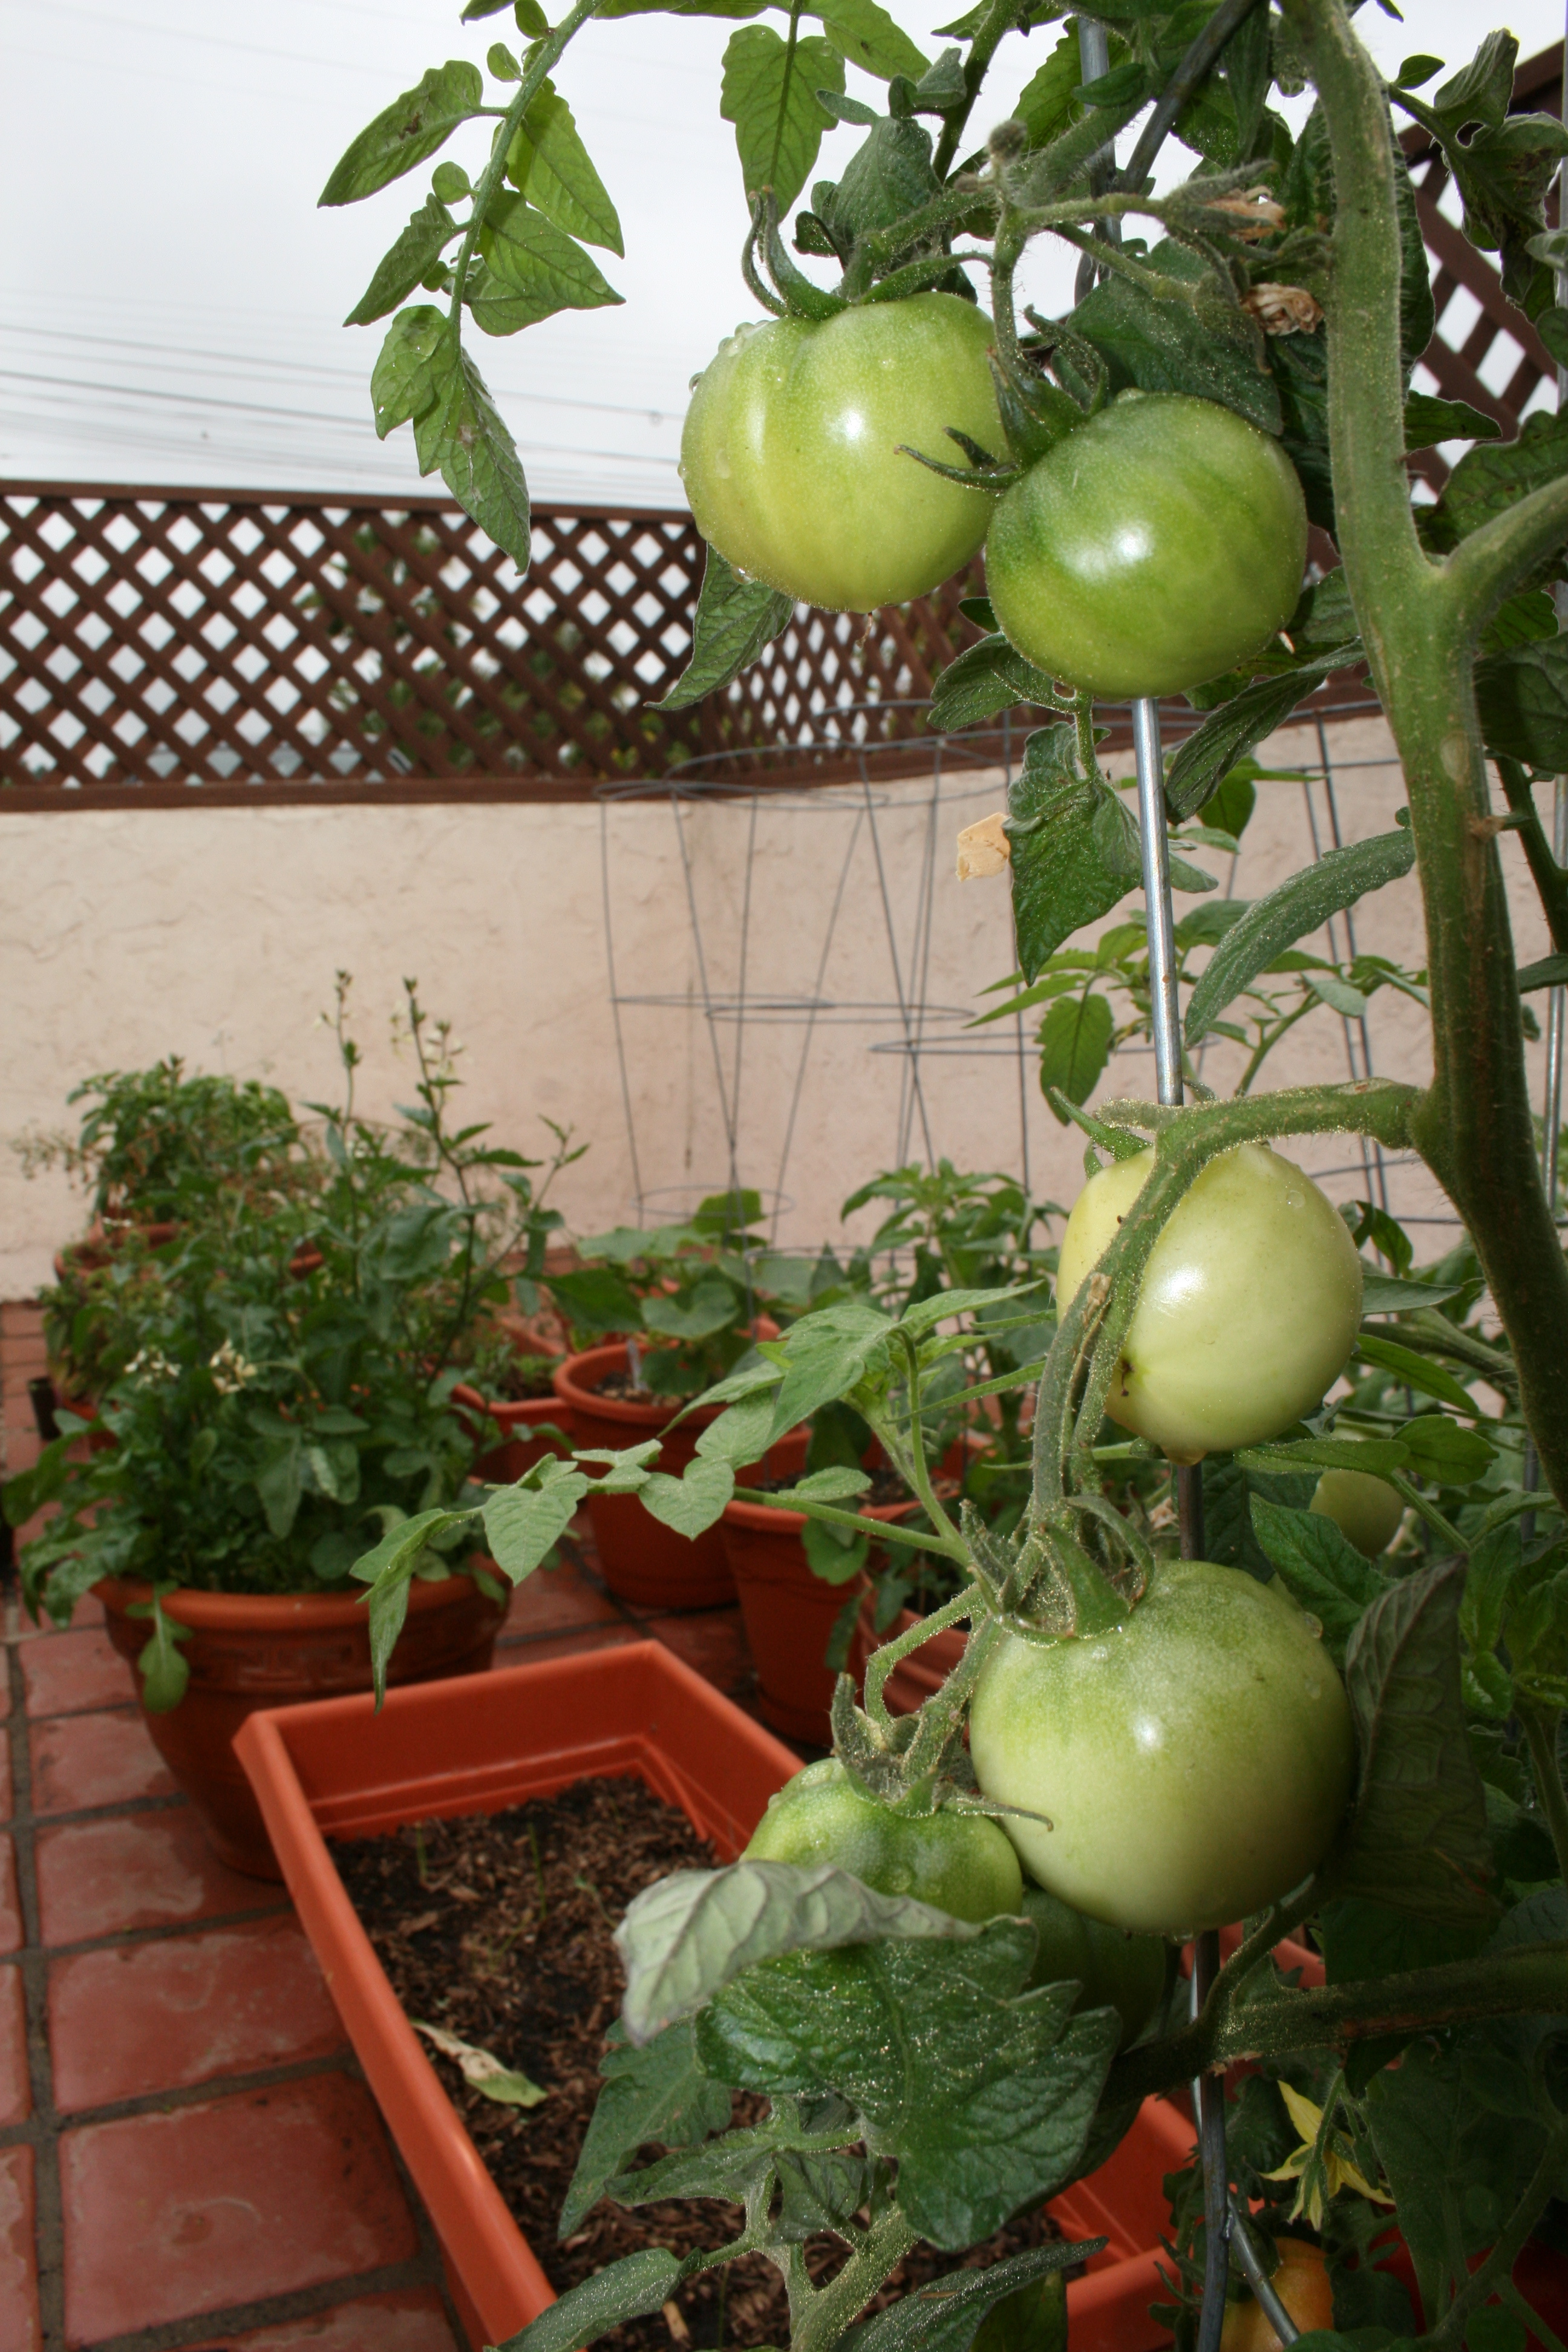 There are 25 tomatoes on this plant. She counted; twice. Other plants include basil, arugula, bell peppers, beans, onions, cucumbers, lettuce, bok choy, chives, kale, chard, and cherry tomatoes.